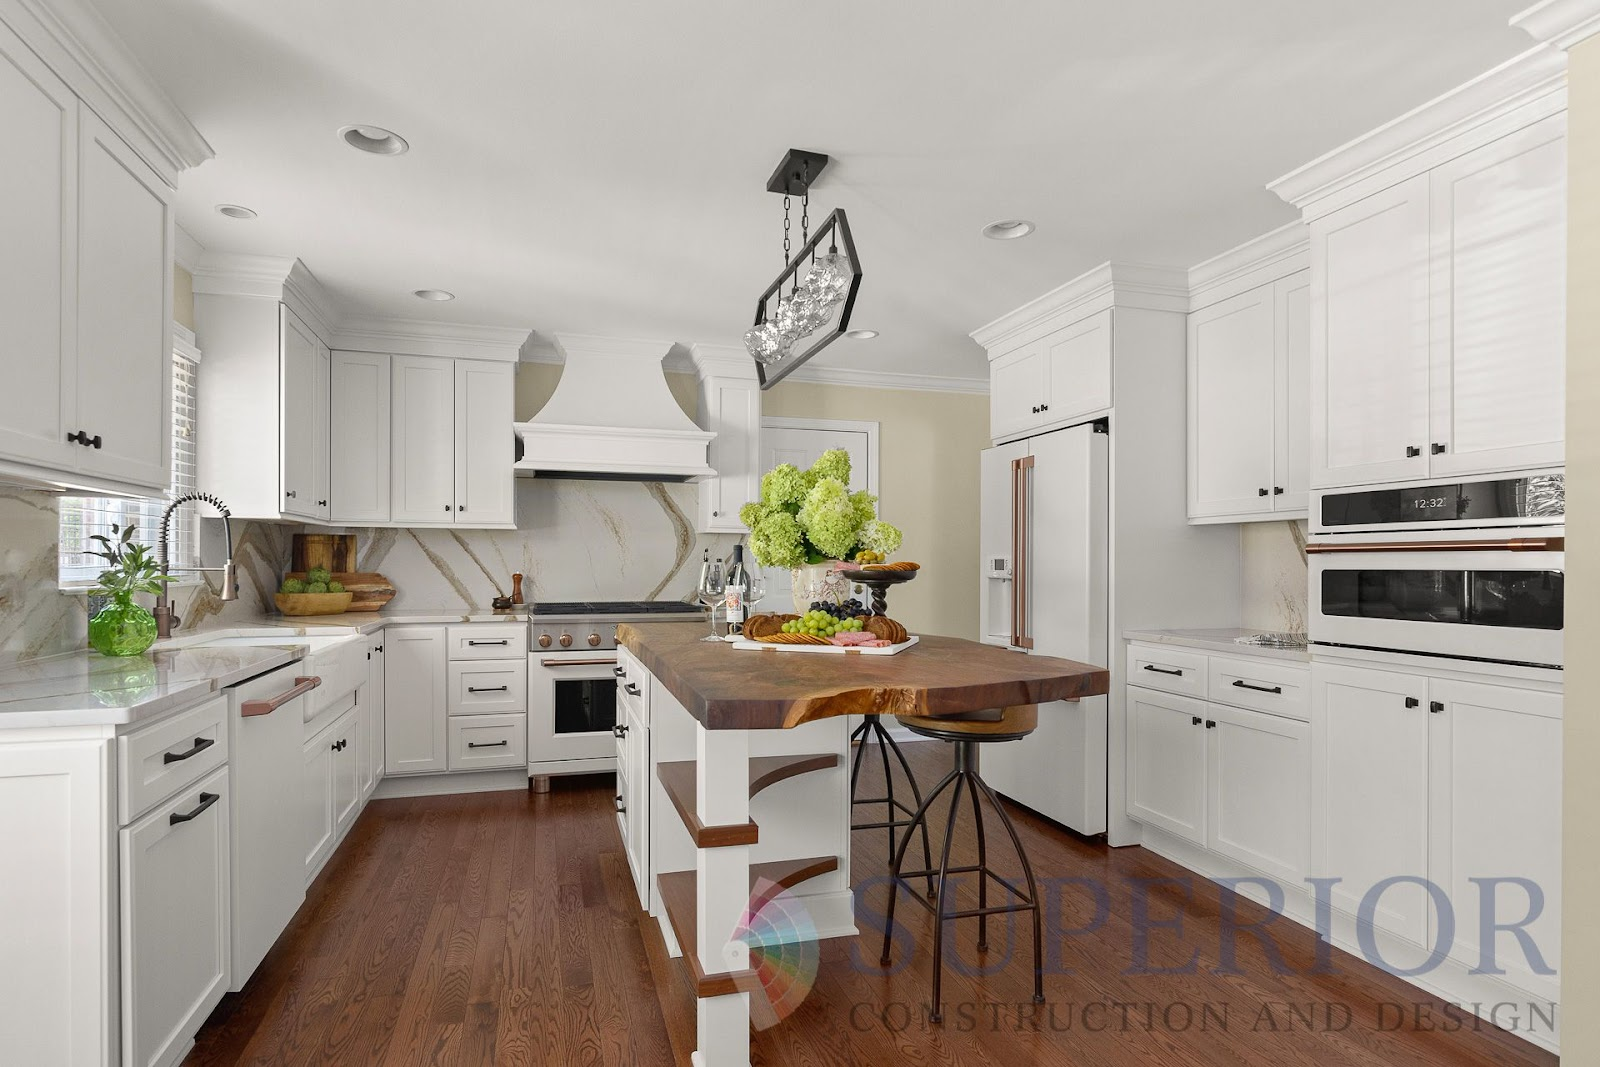 after kitchen renovation remodel custom island walnut shelving white GE cafe appliances trim statement lighting